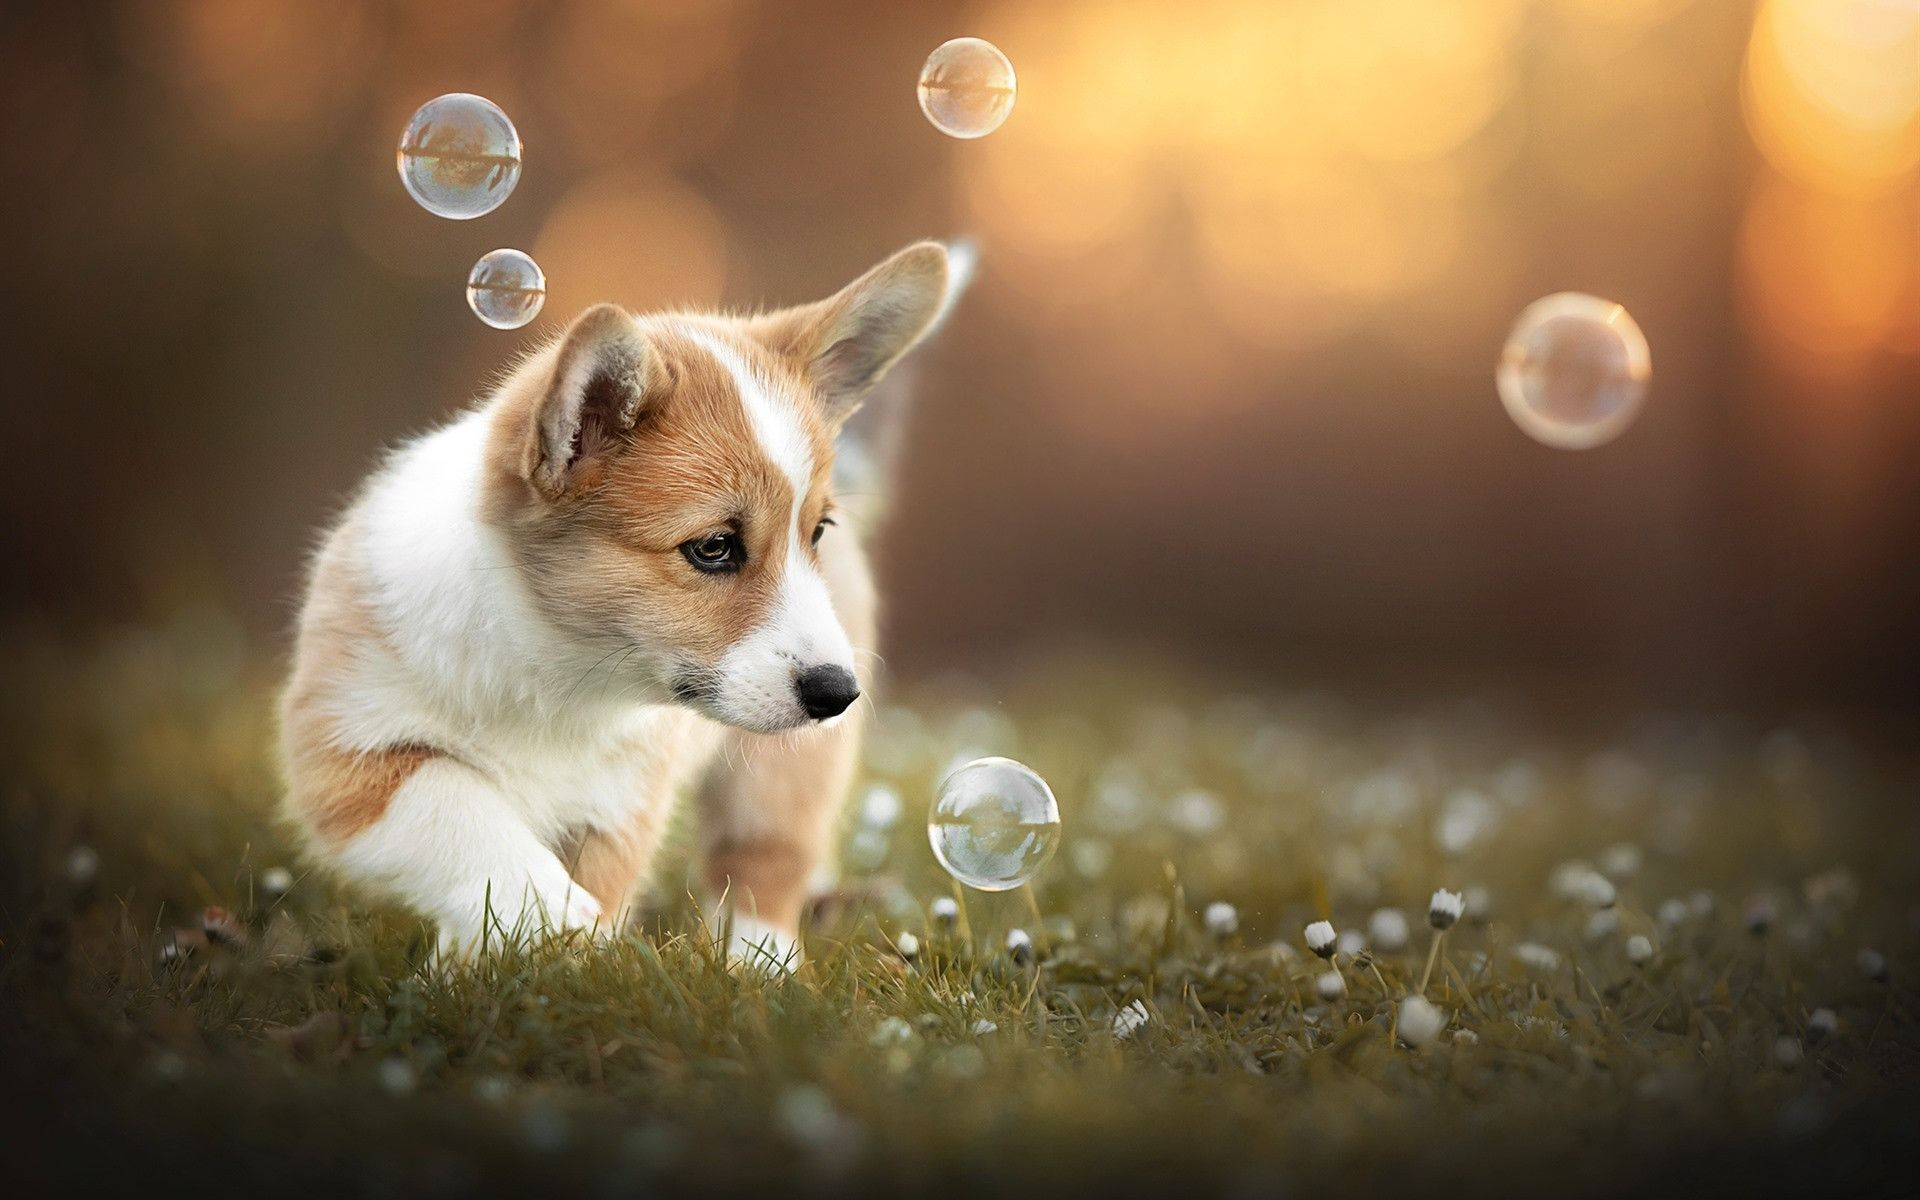 Puppy Play Wallpapers 41 Best Free Puppy Play Hd